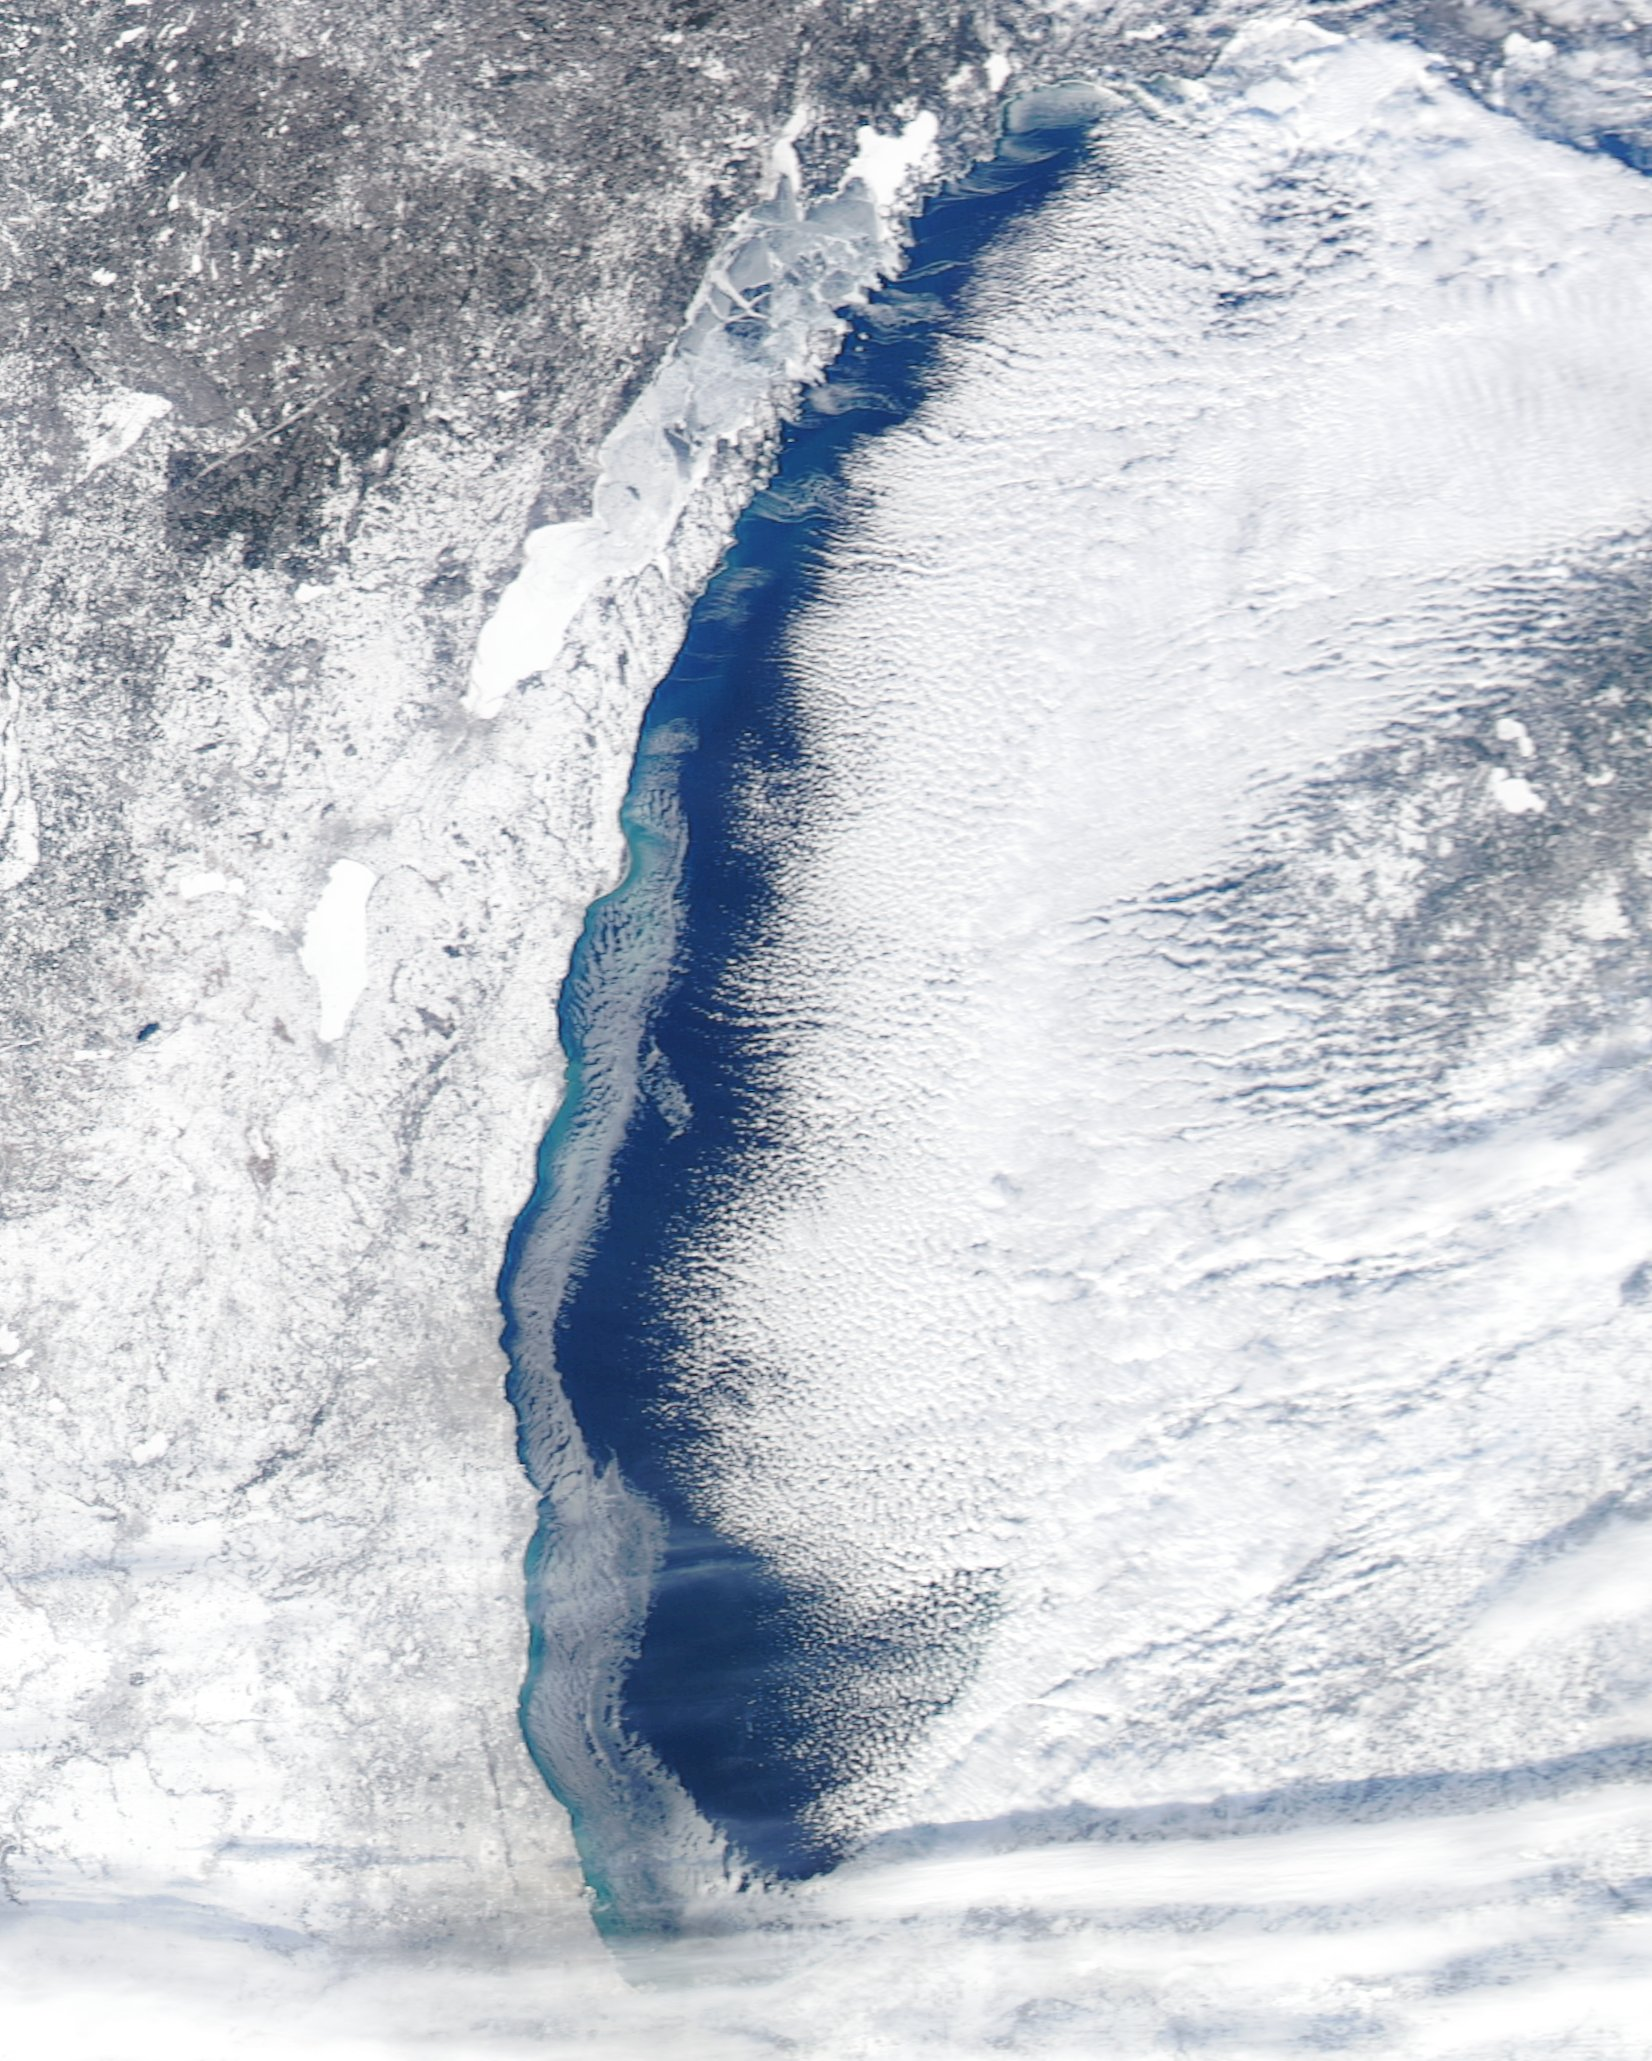 Lake Michigan currently has 87 percent ice coverage, which is unheard of, and will most likely be a record before this winter is over.